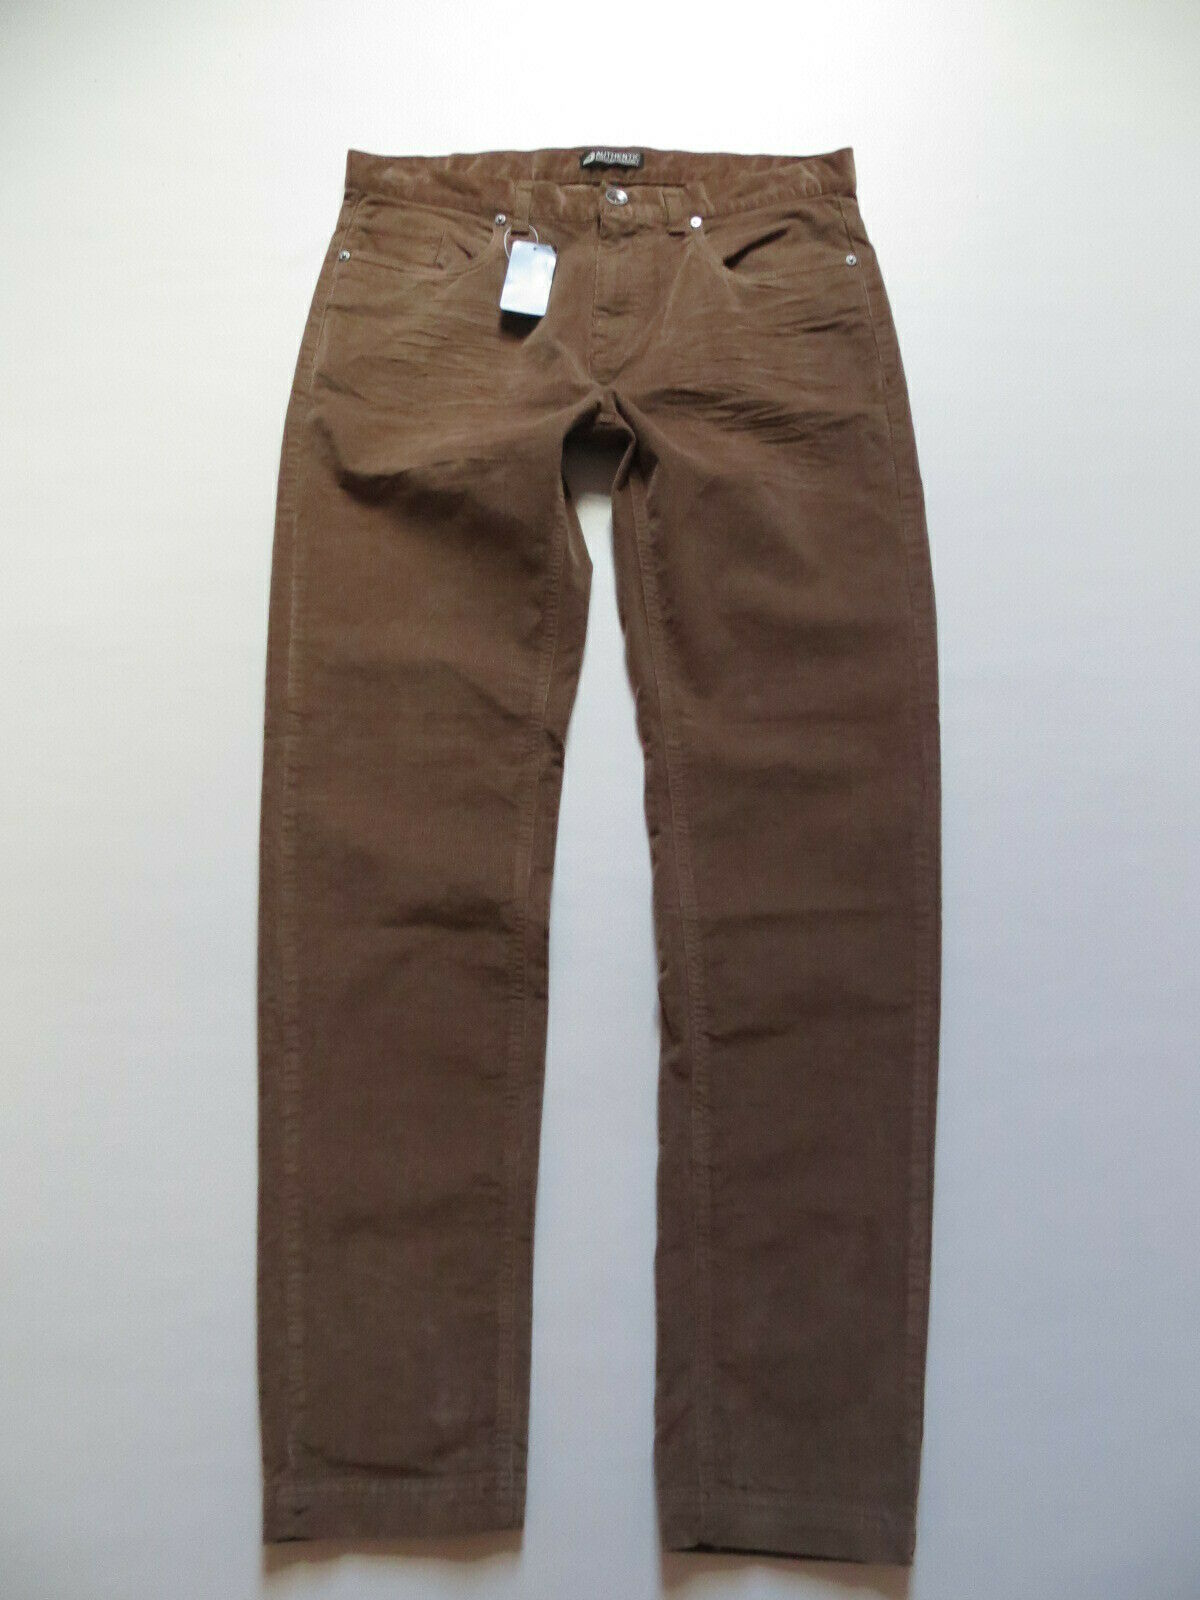 Cord Jeans Hose, W 38  L 33, hell-brown, NEU   bequeme Stretch Cordhose   Gr. 54